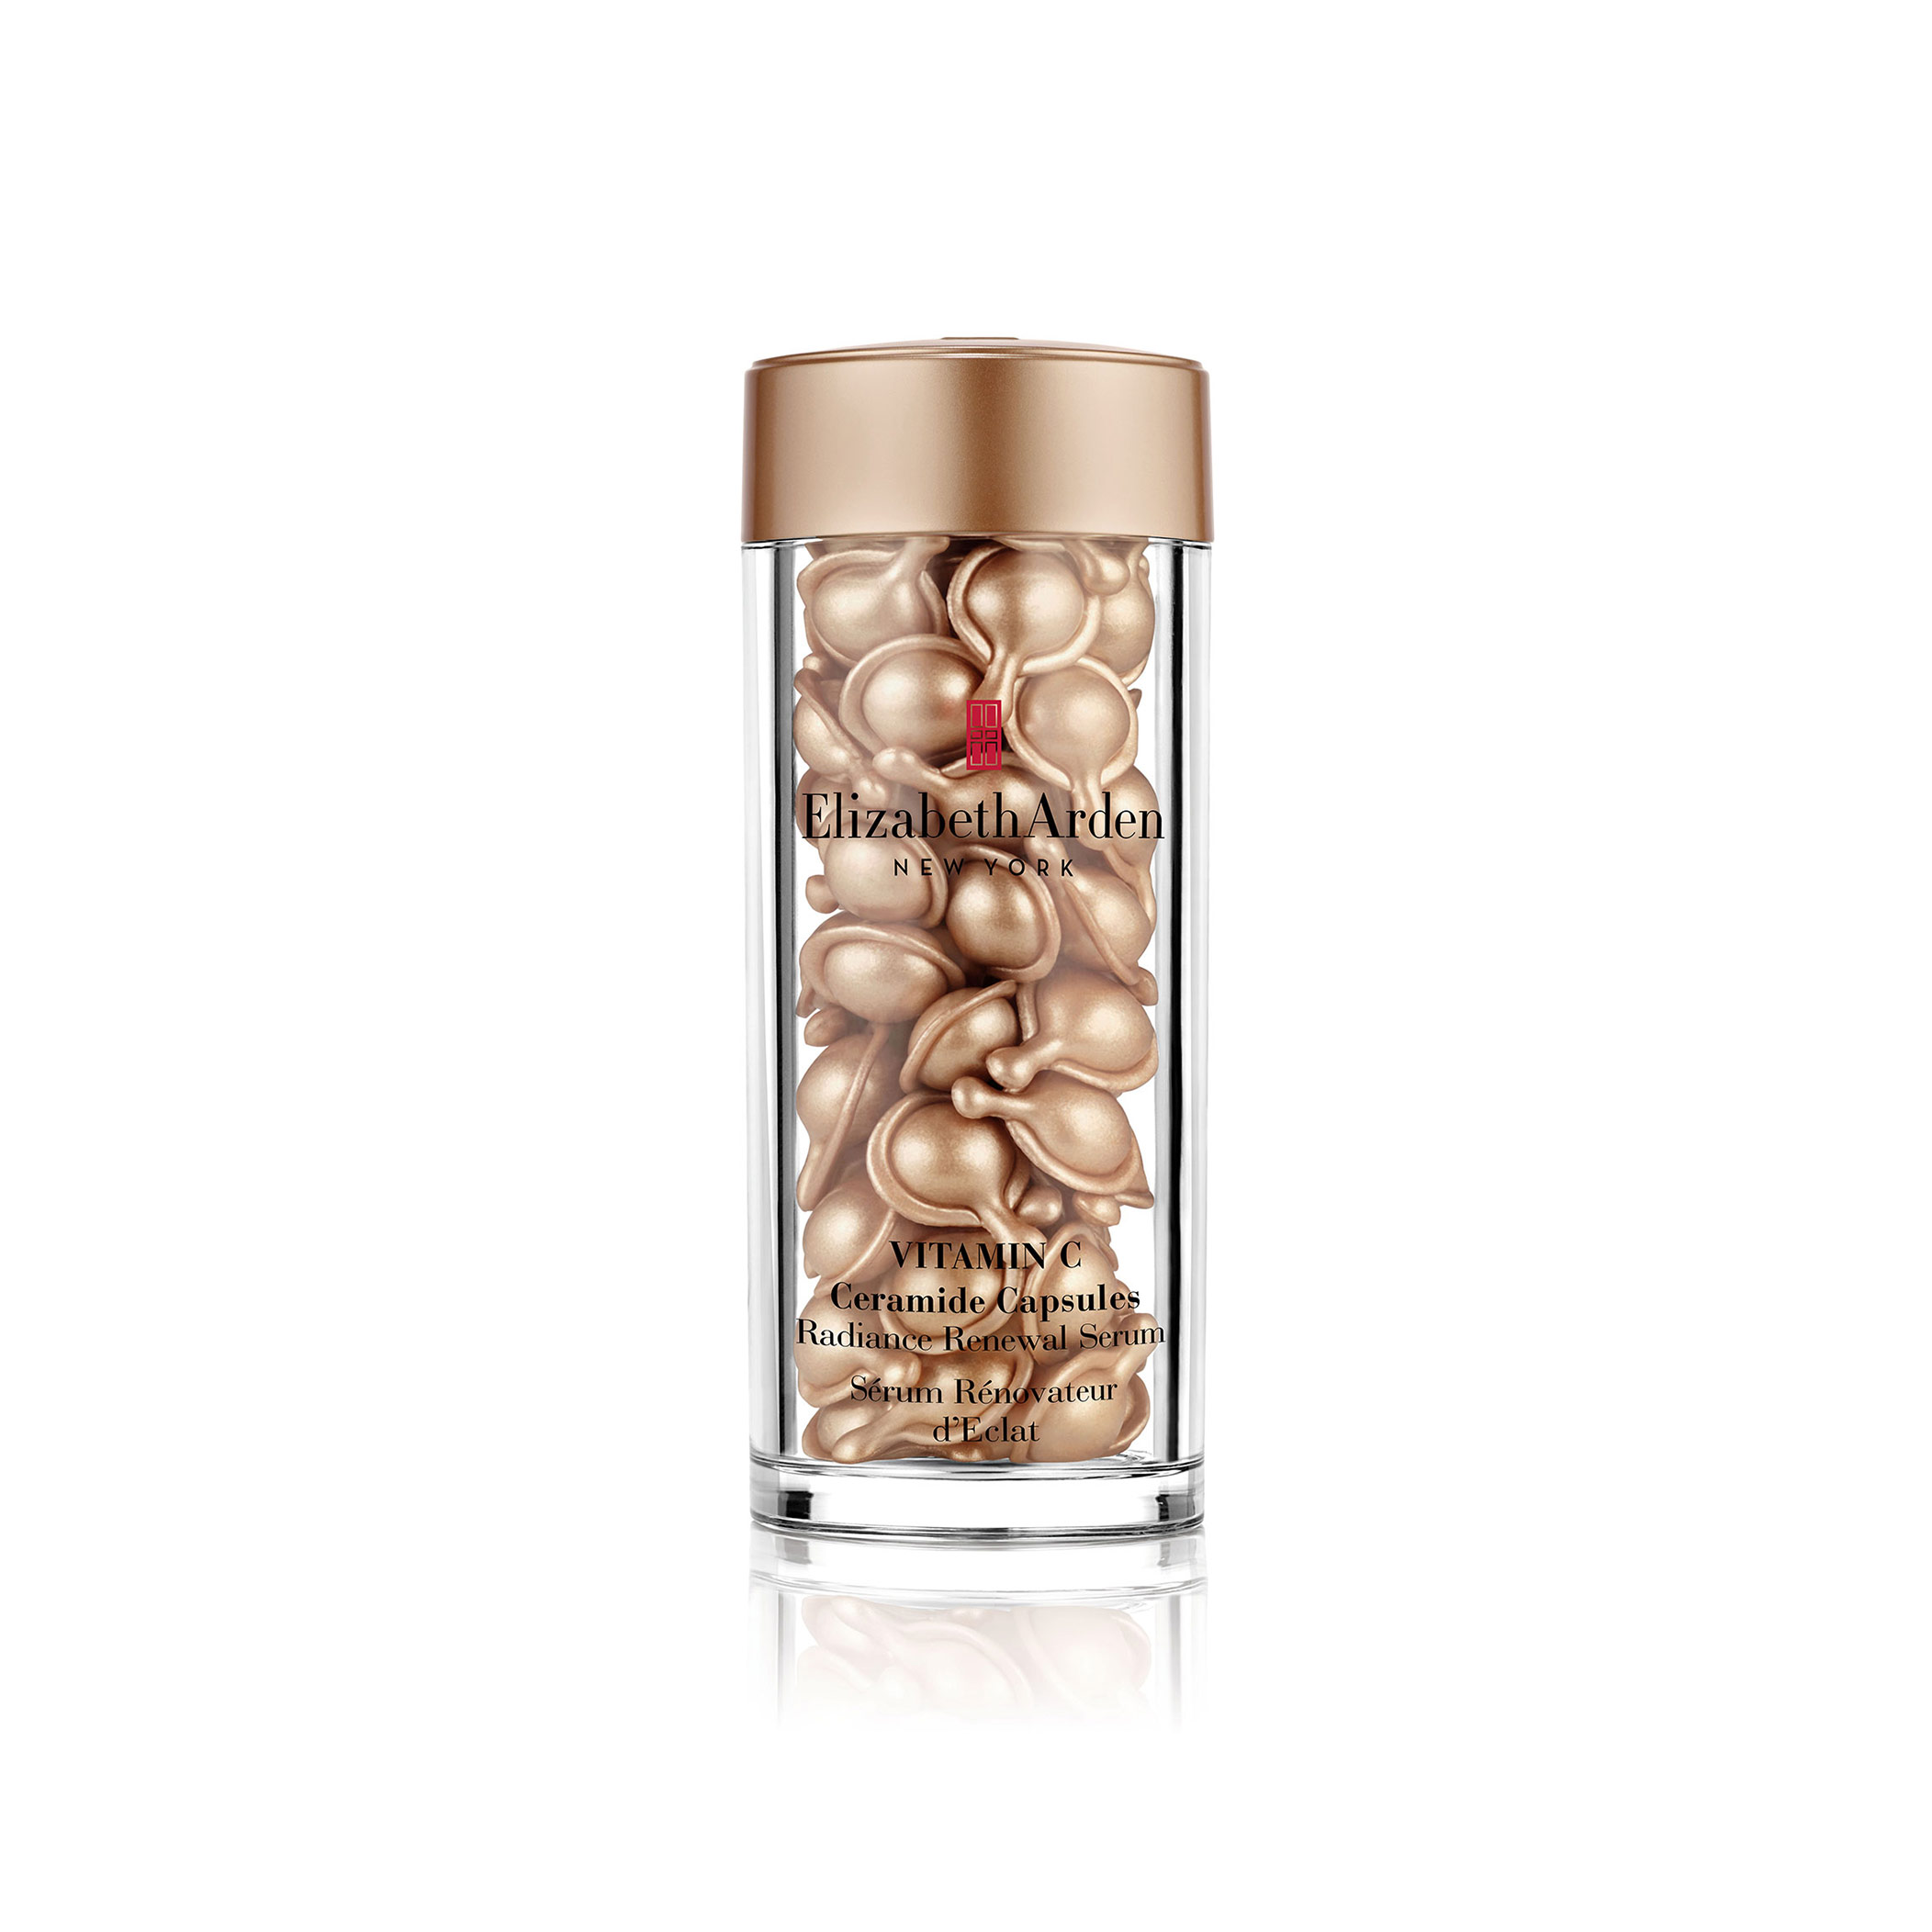 Vitamin C Ceramide Capsules Radiance Renewal Serum 60-Piece, , large